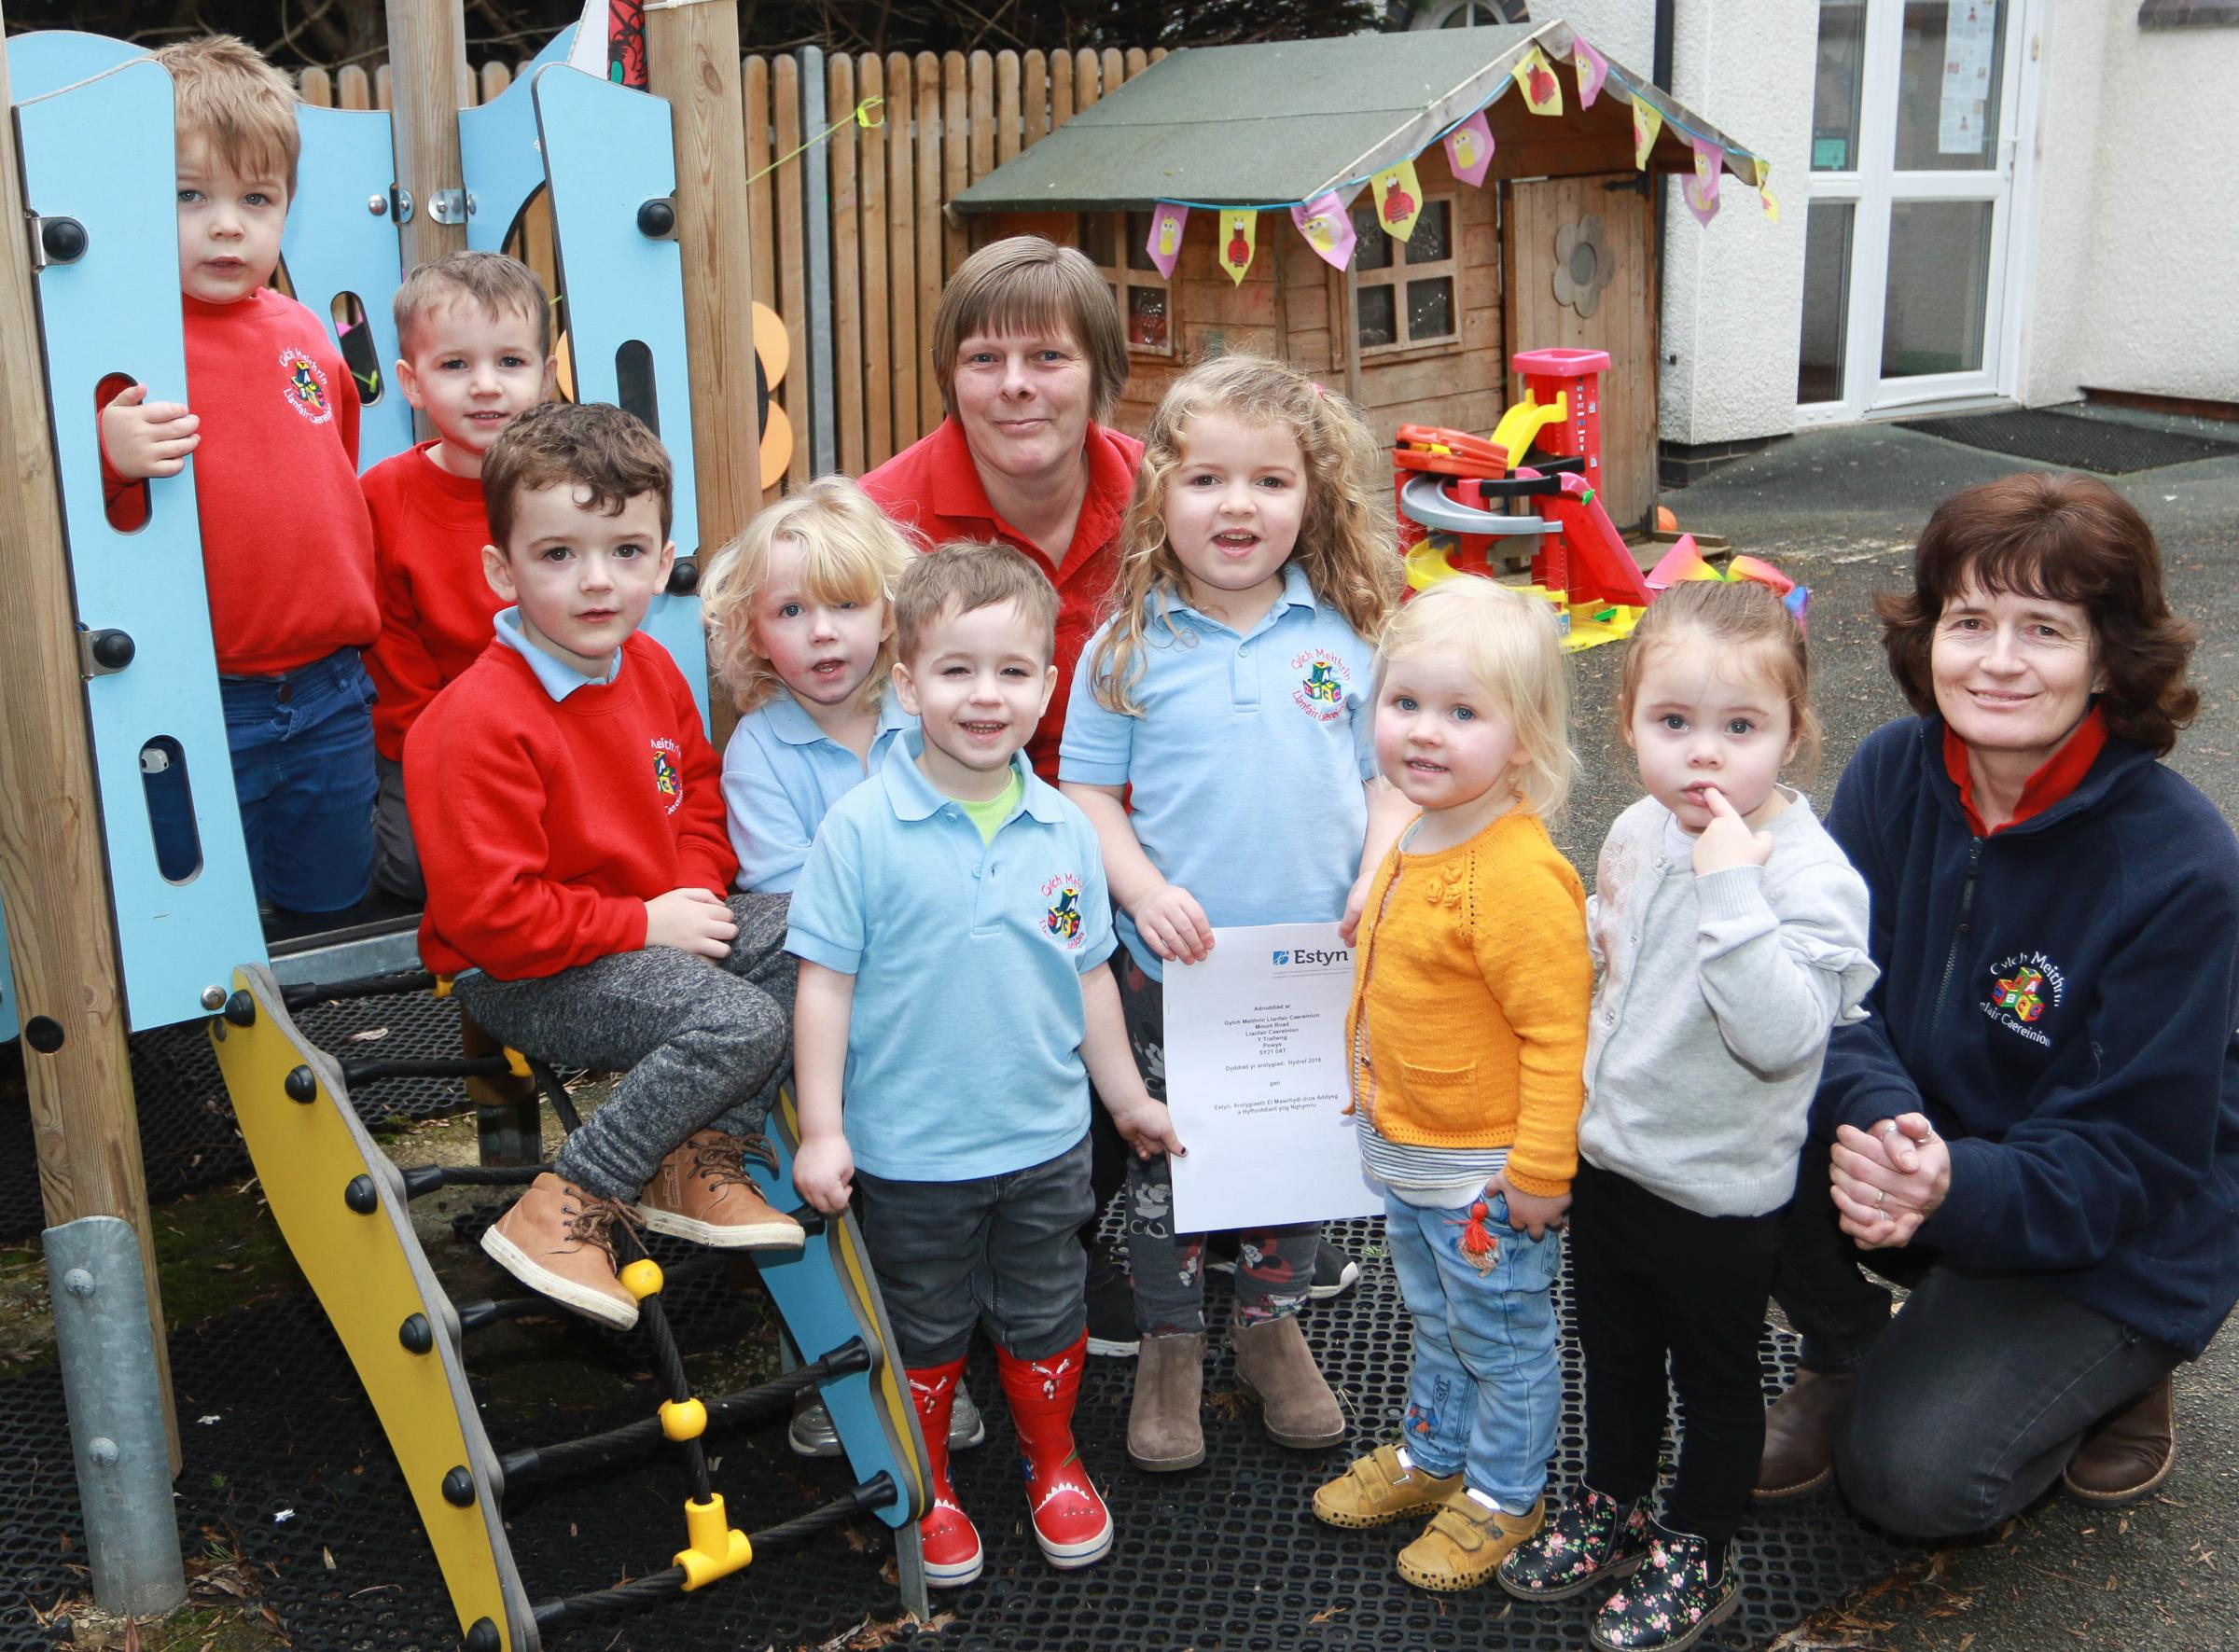 Llanfair Caereinion Nursery Cylch Meithrin has had a 'Good' Estyn report. Some of the children from the nursery are with Ellen Davies (back left) and Karen Junor (back right). Picture: Phil Blagg (PB016-4)